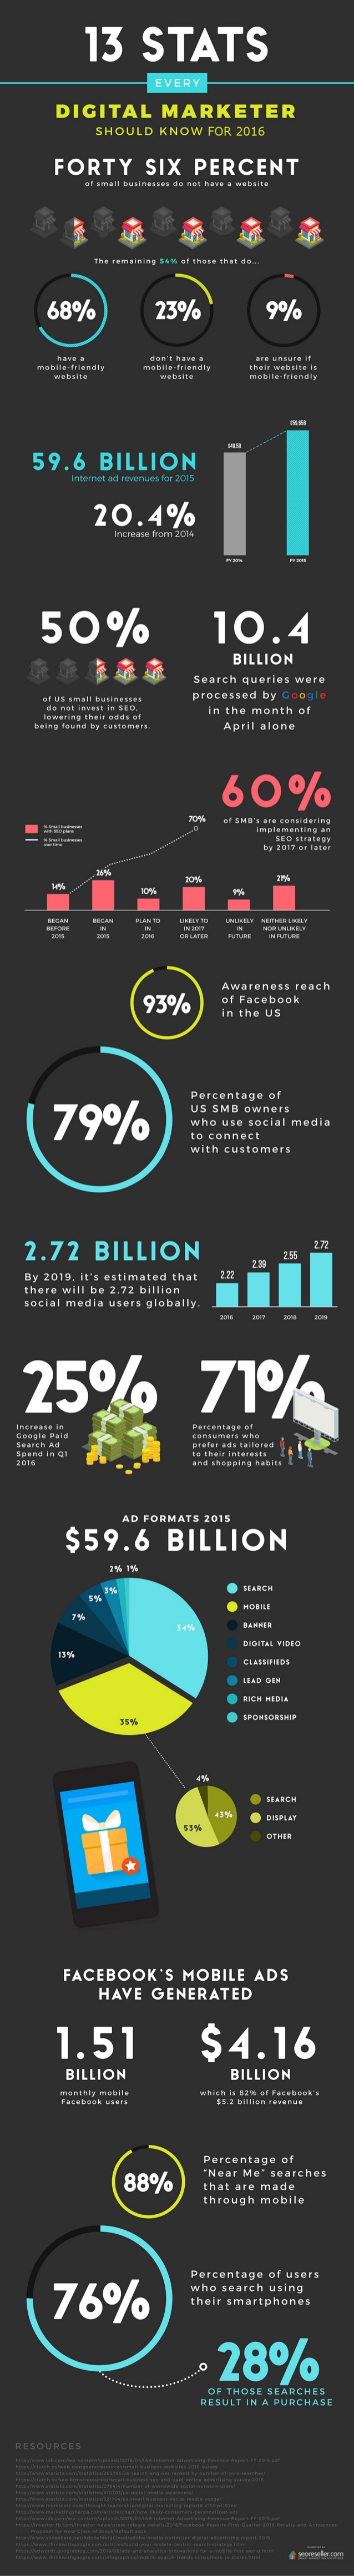 13-stats-every-digital-marketer-should-know-2016